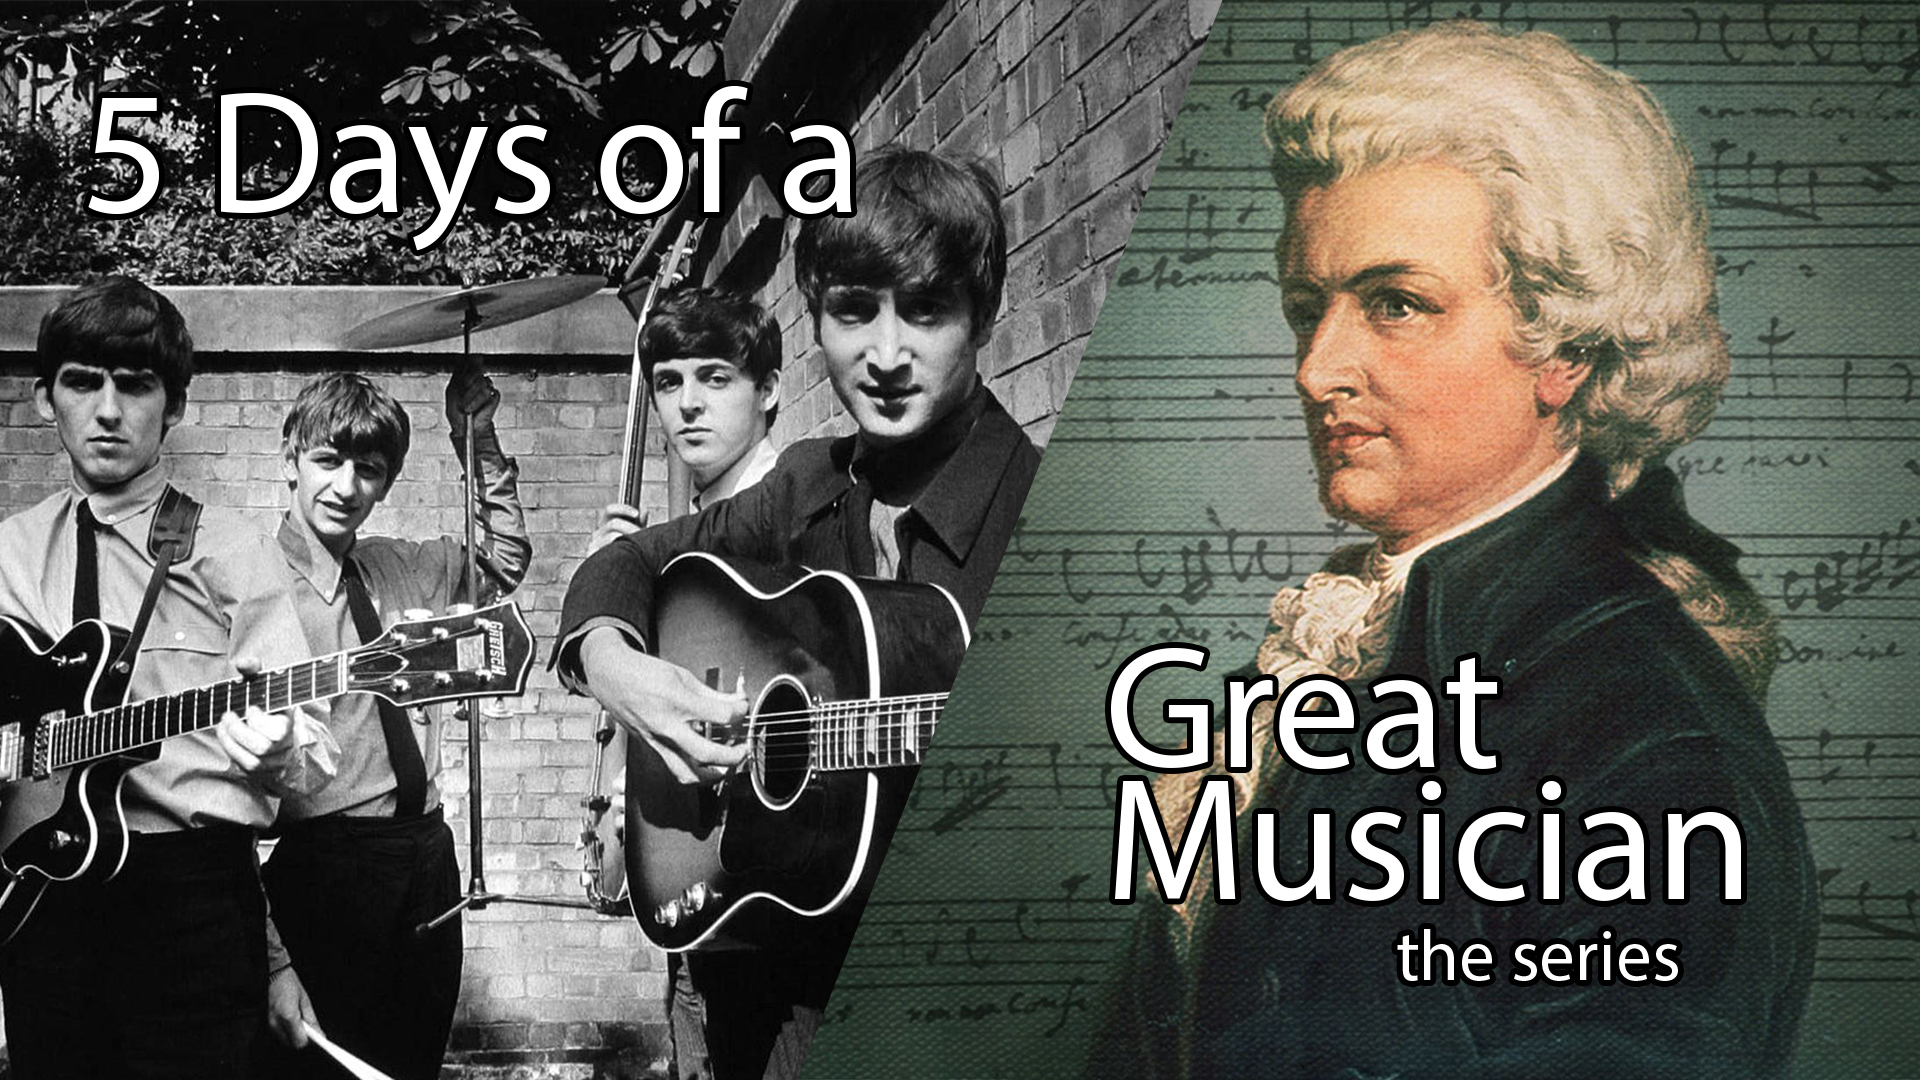 5 Days of a Great Musician: An Introduction to Featured Musicians on this Site